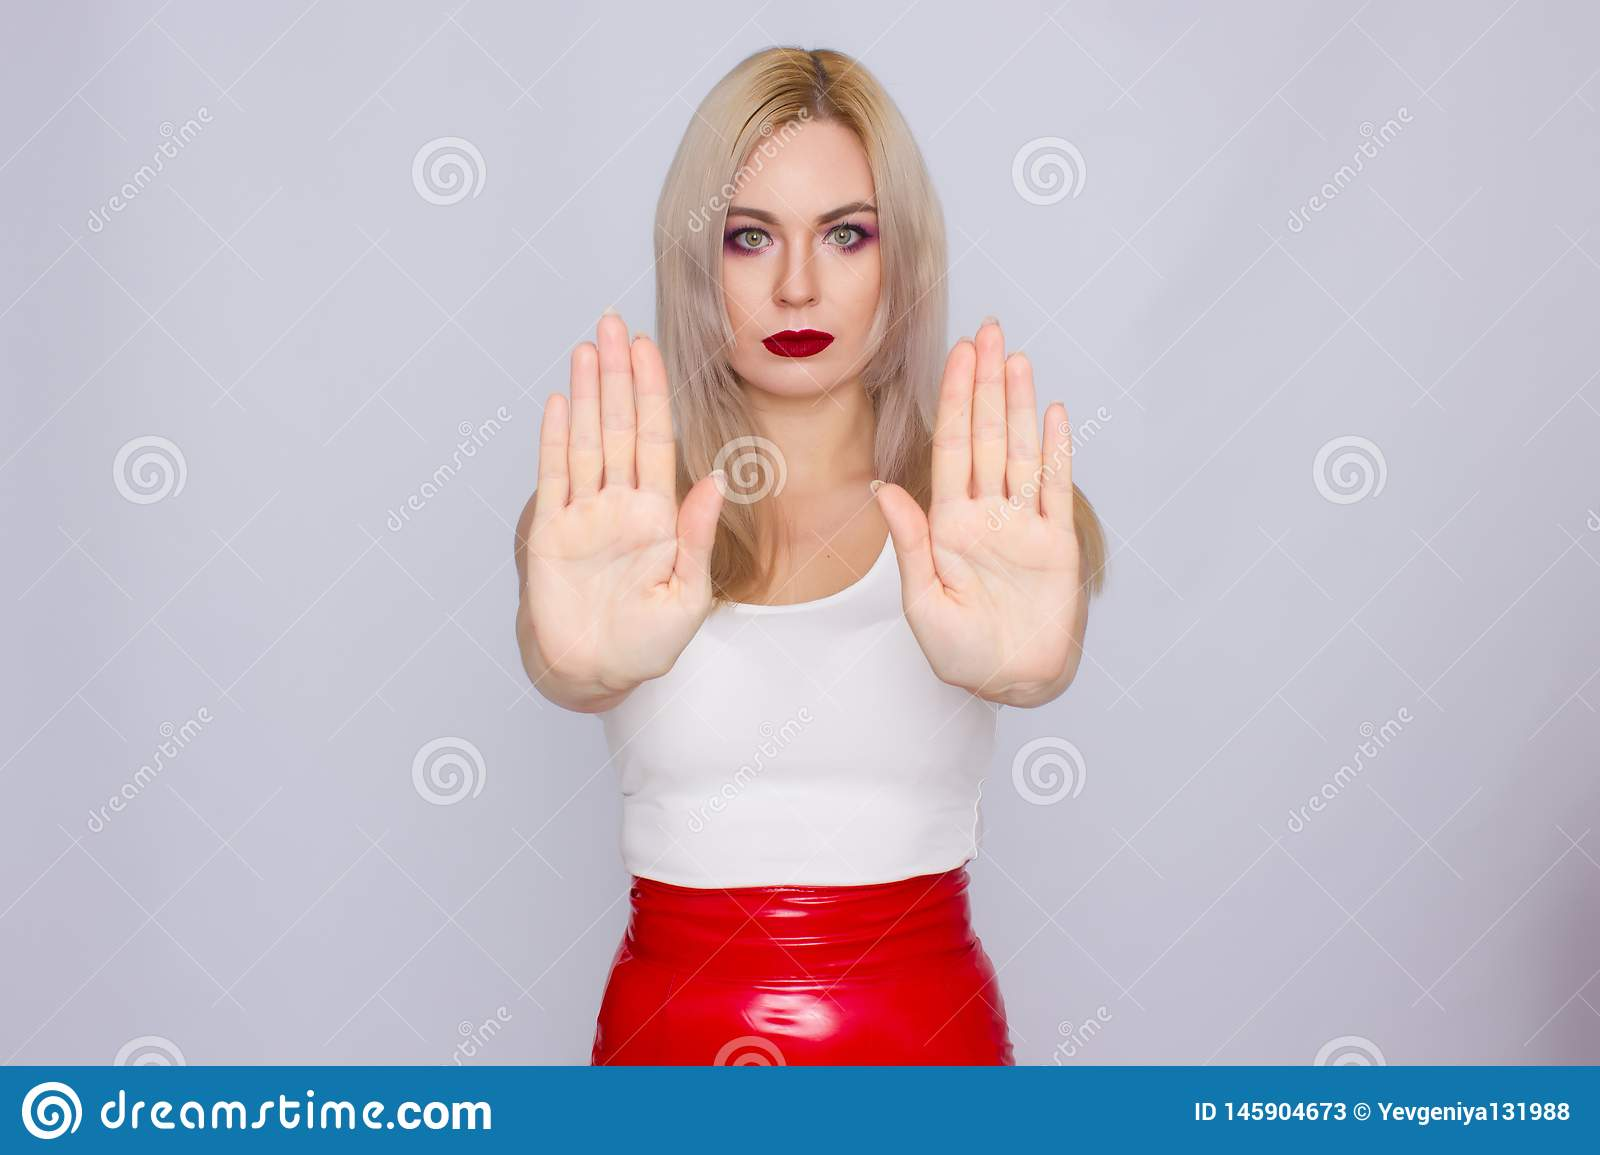 Blonde woman in red leather skirt and white shirt